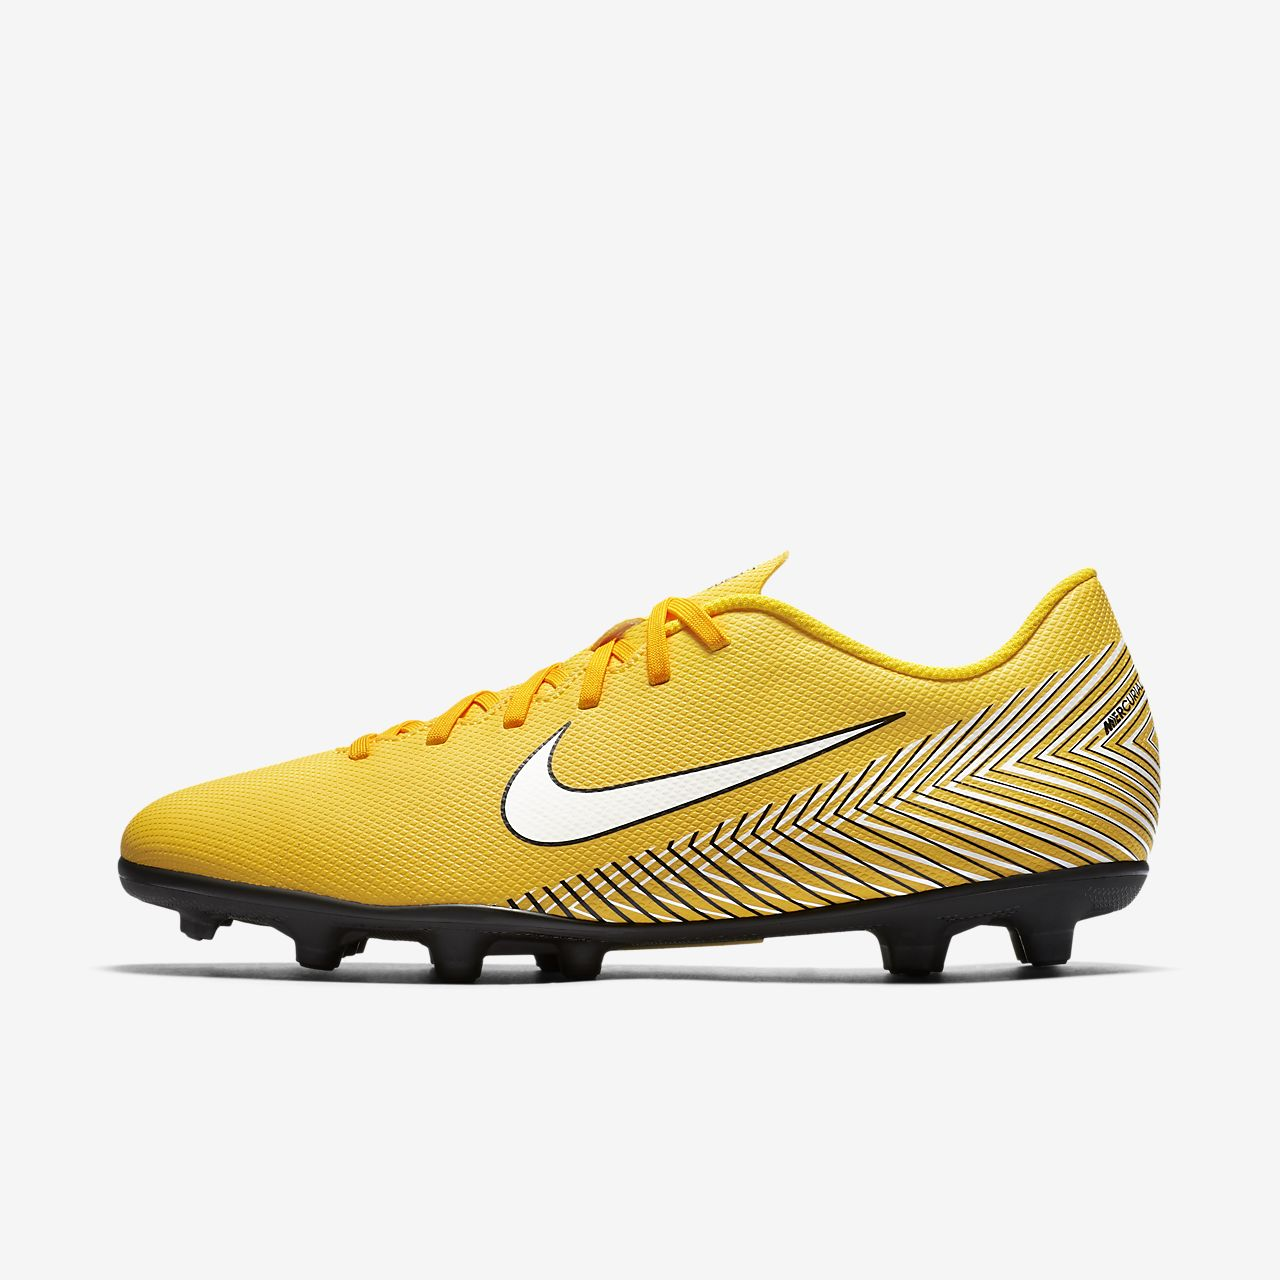 ca4e6add8 ... denmark nike mercurial vapor xii club neymar jr multi ground soccer  cleat 8ffcd afa75